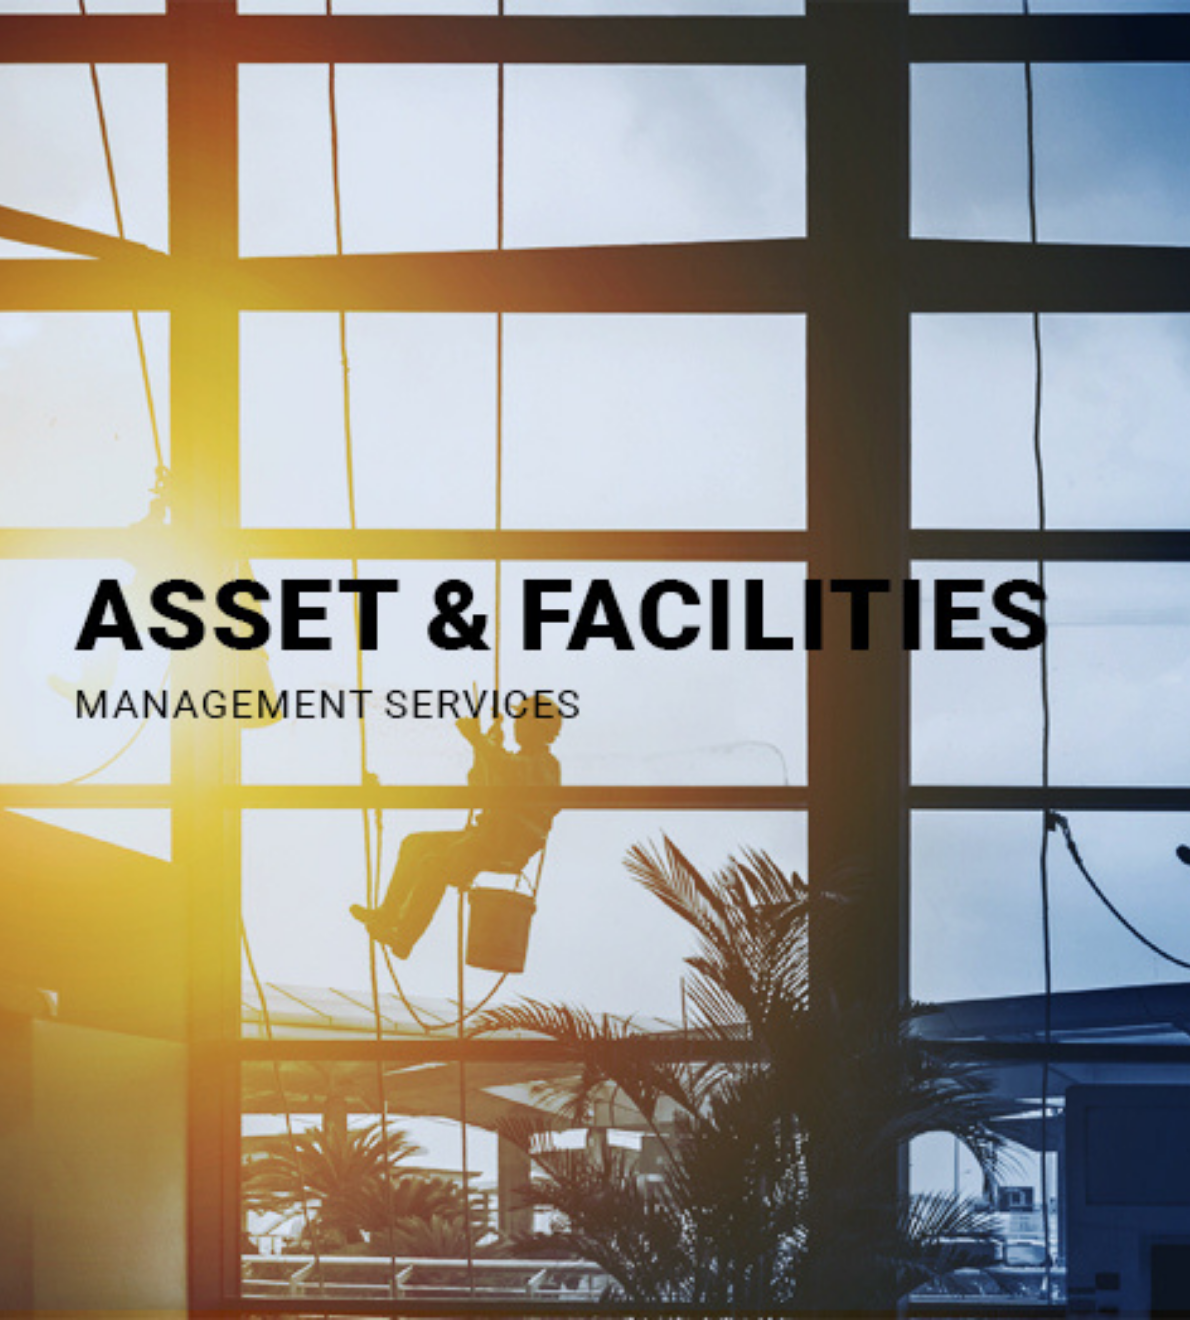 Facilities and Assest management